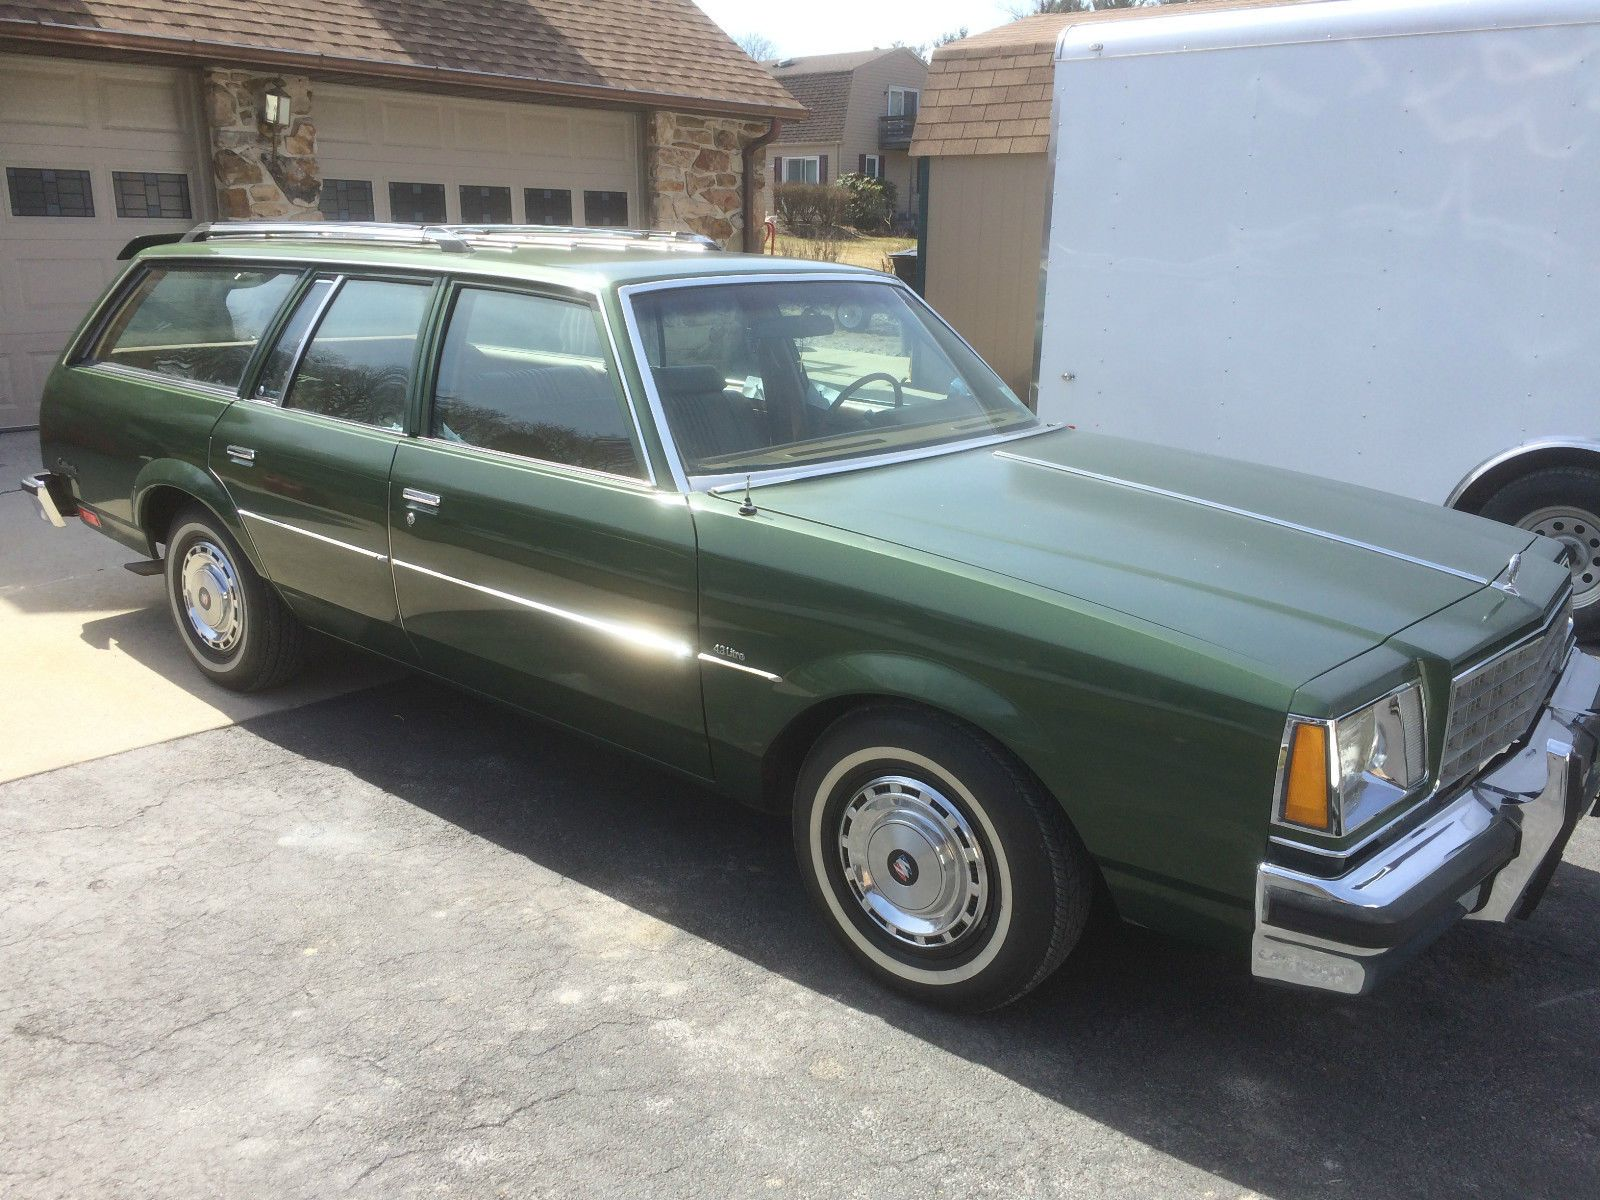 rain man old adolphus traver an auction buick nov david from roadmaster for to hemmings on car definitely today buicks daily heads sale excellent blog